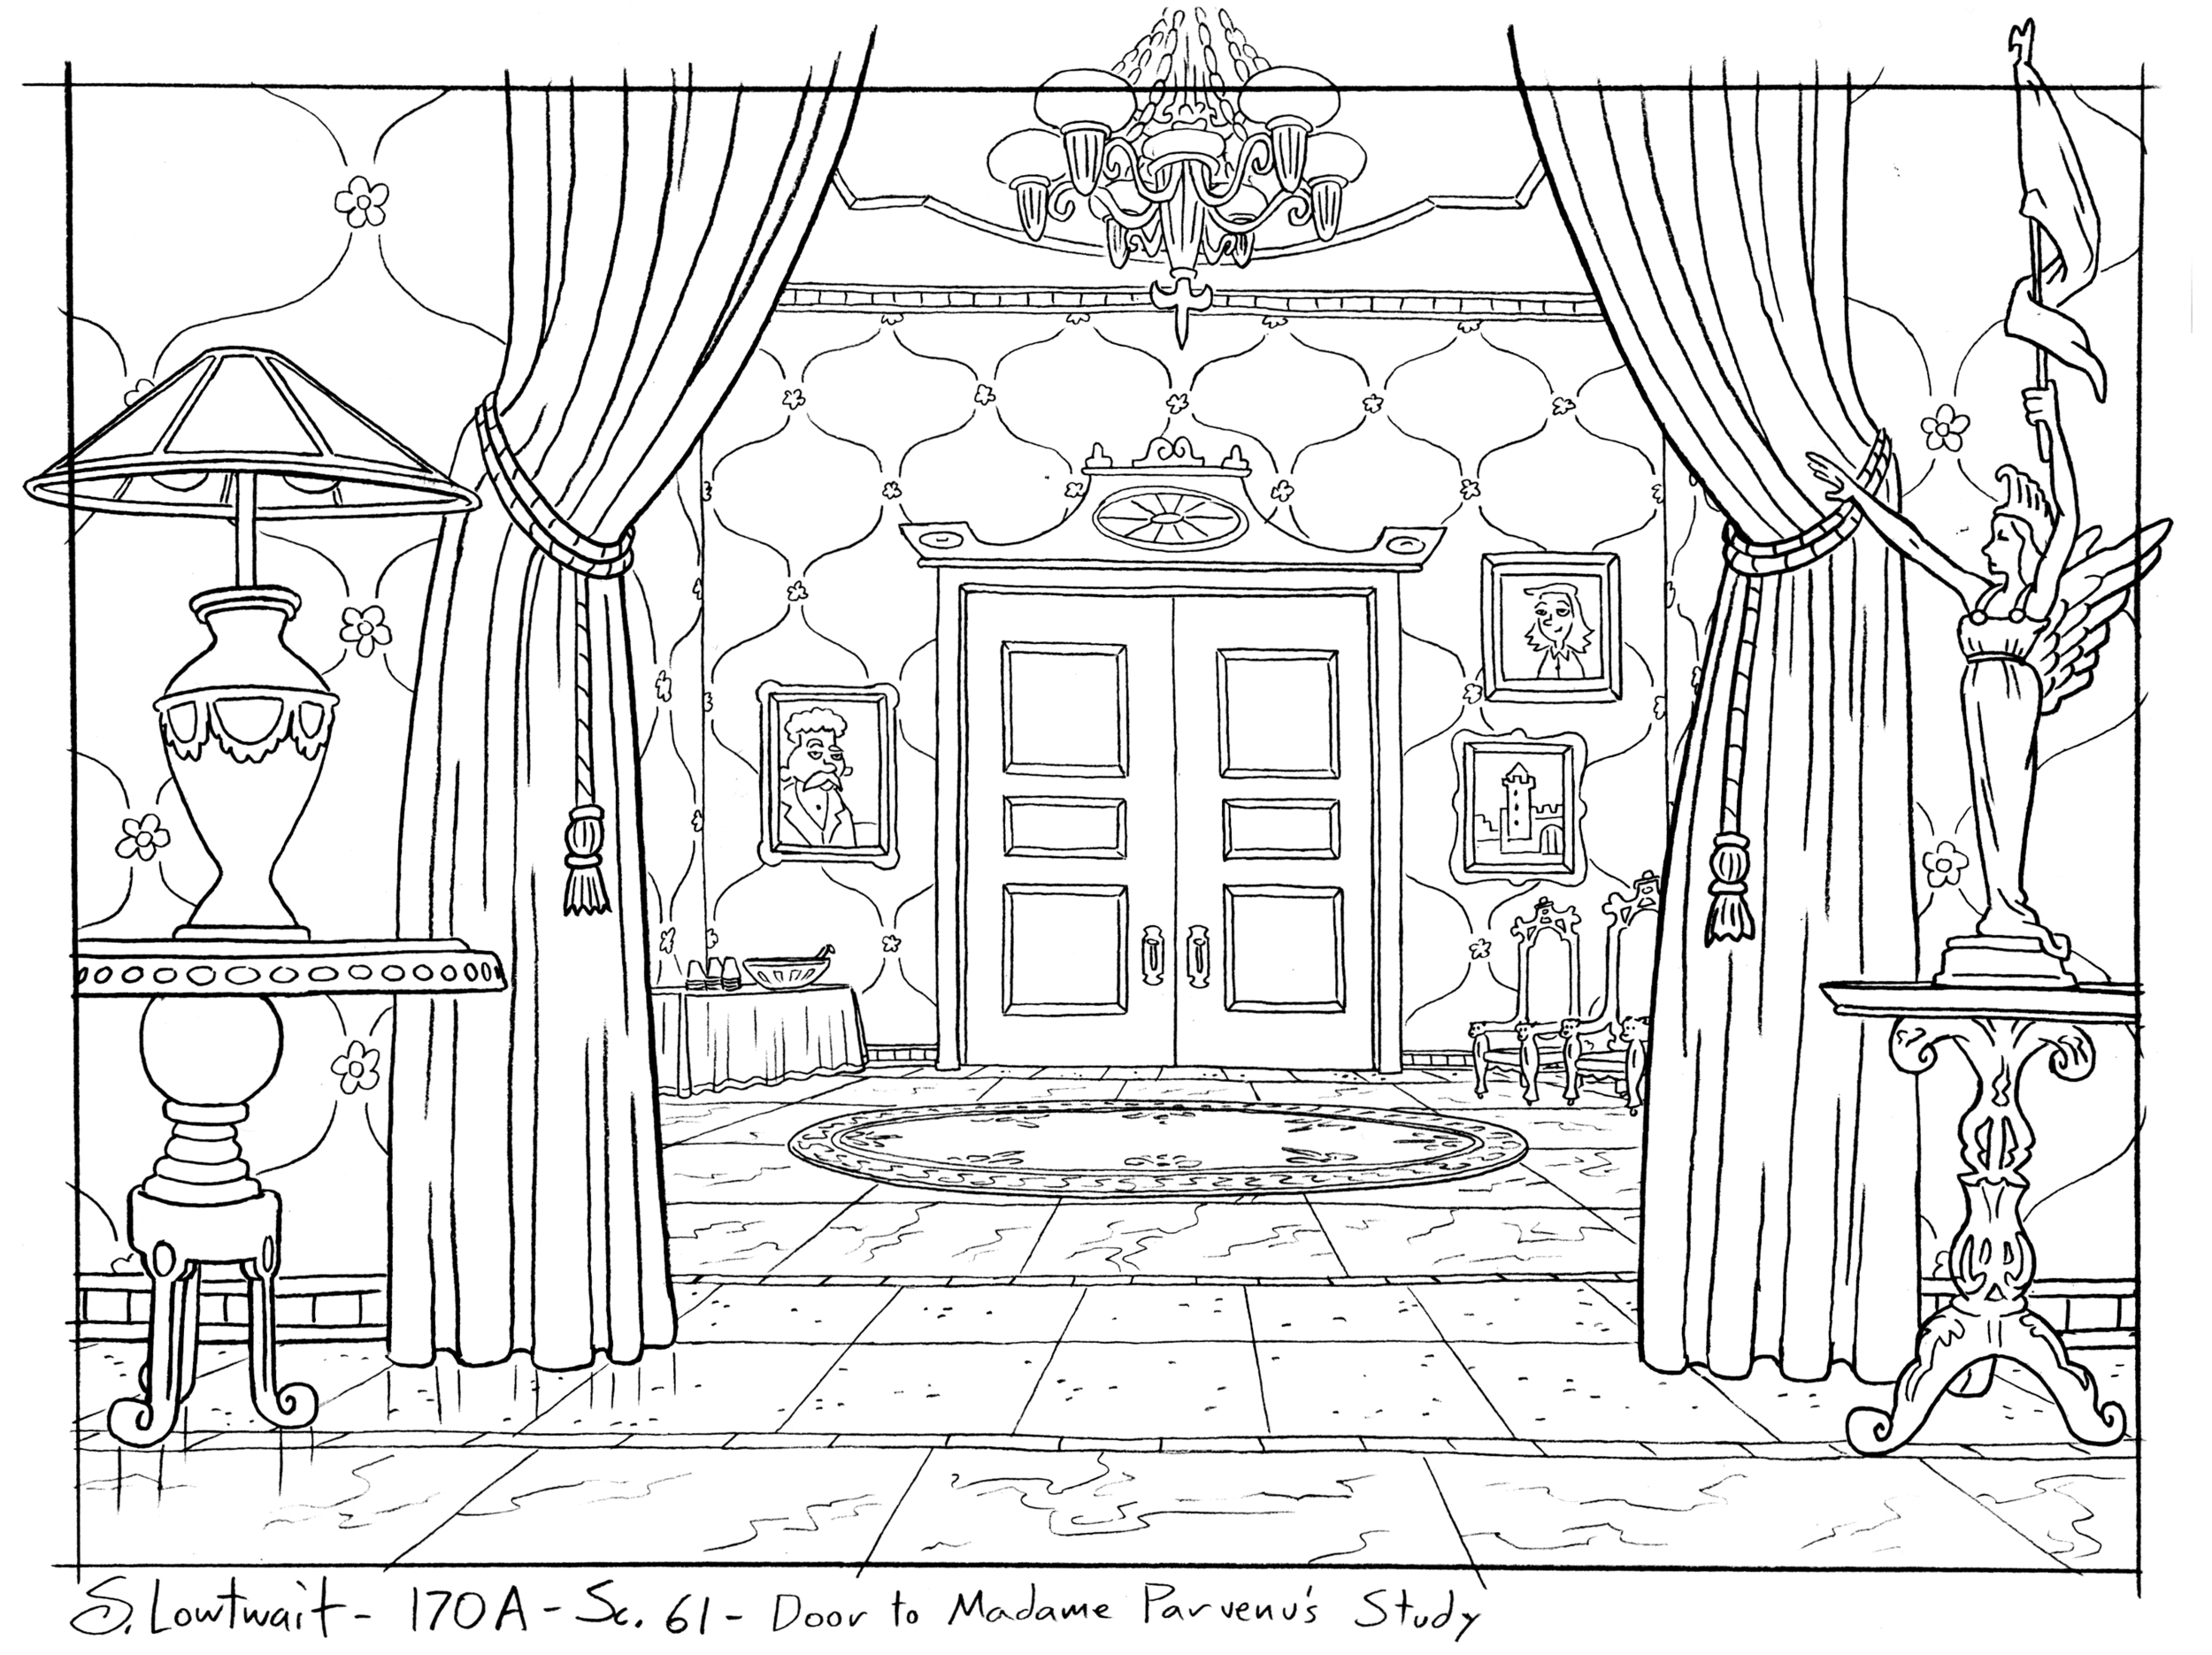 The opposite side of the Victorian lounge looking into another room.